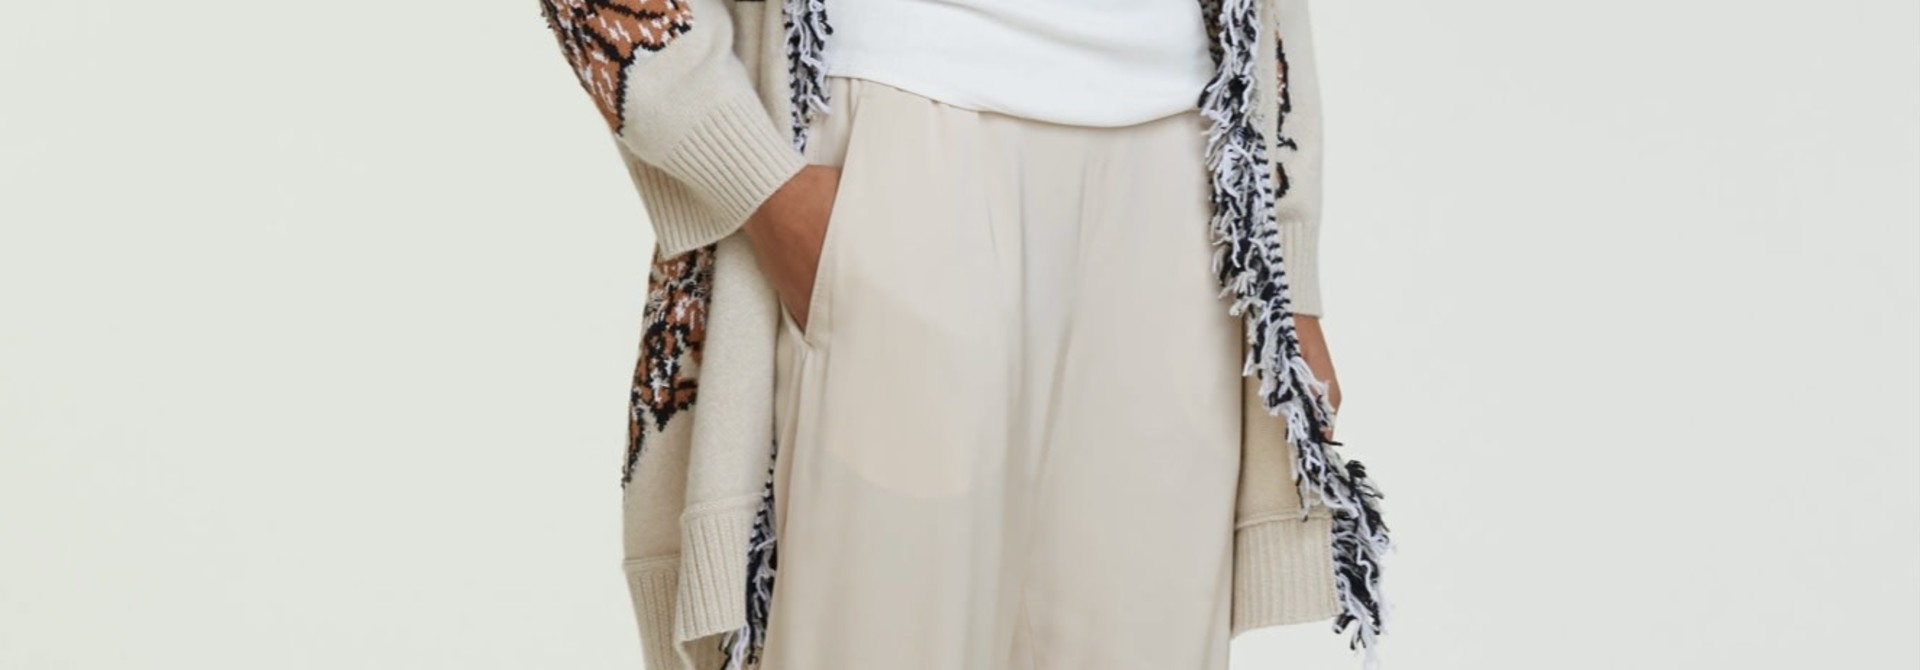 Slouchy cool pants dorothee schumacher